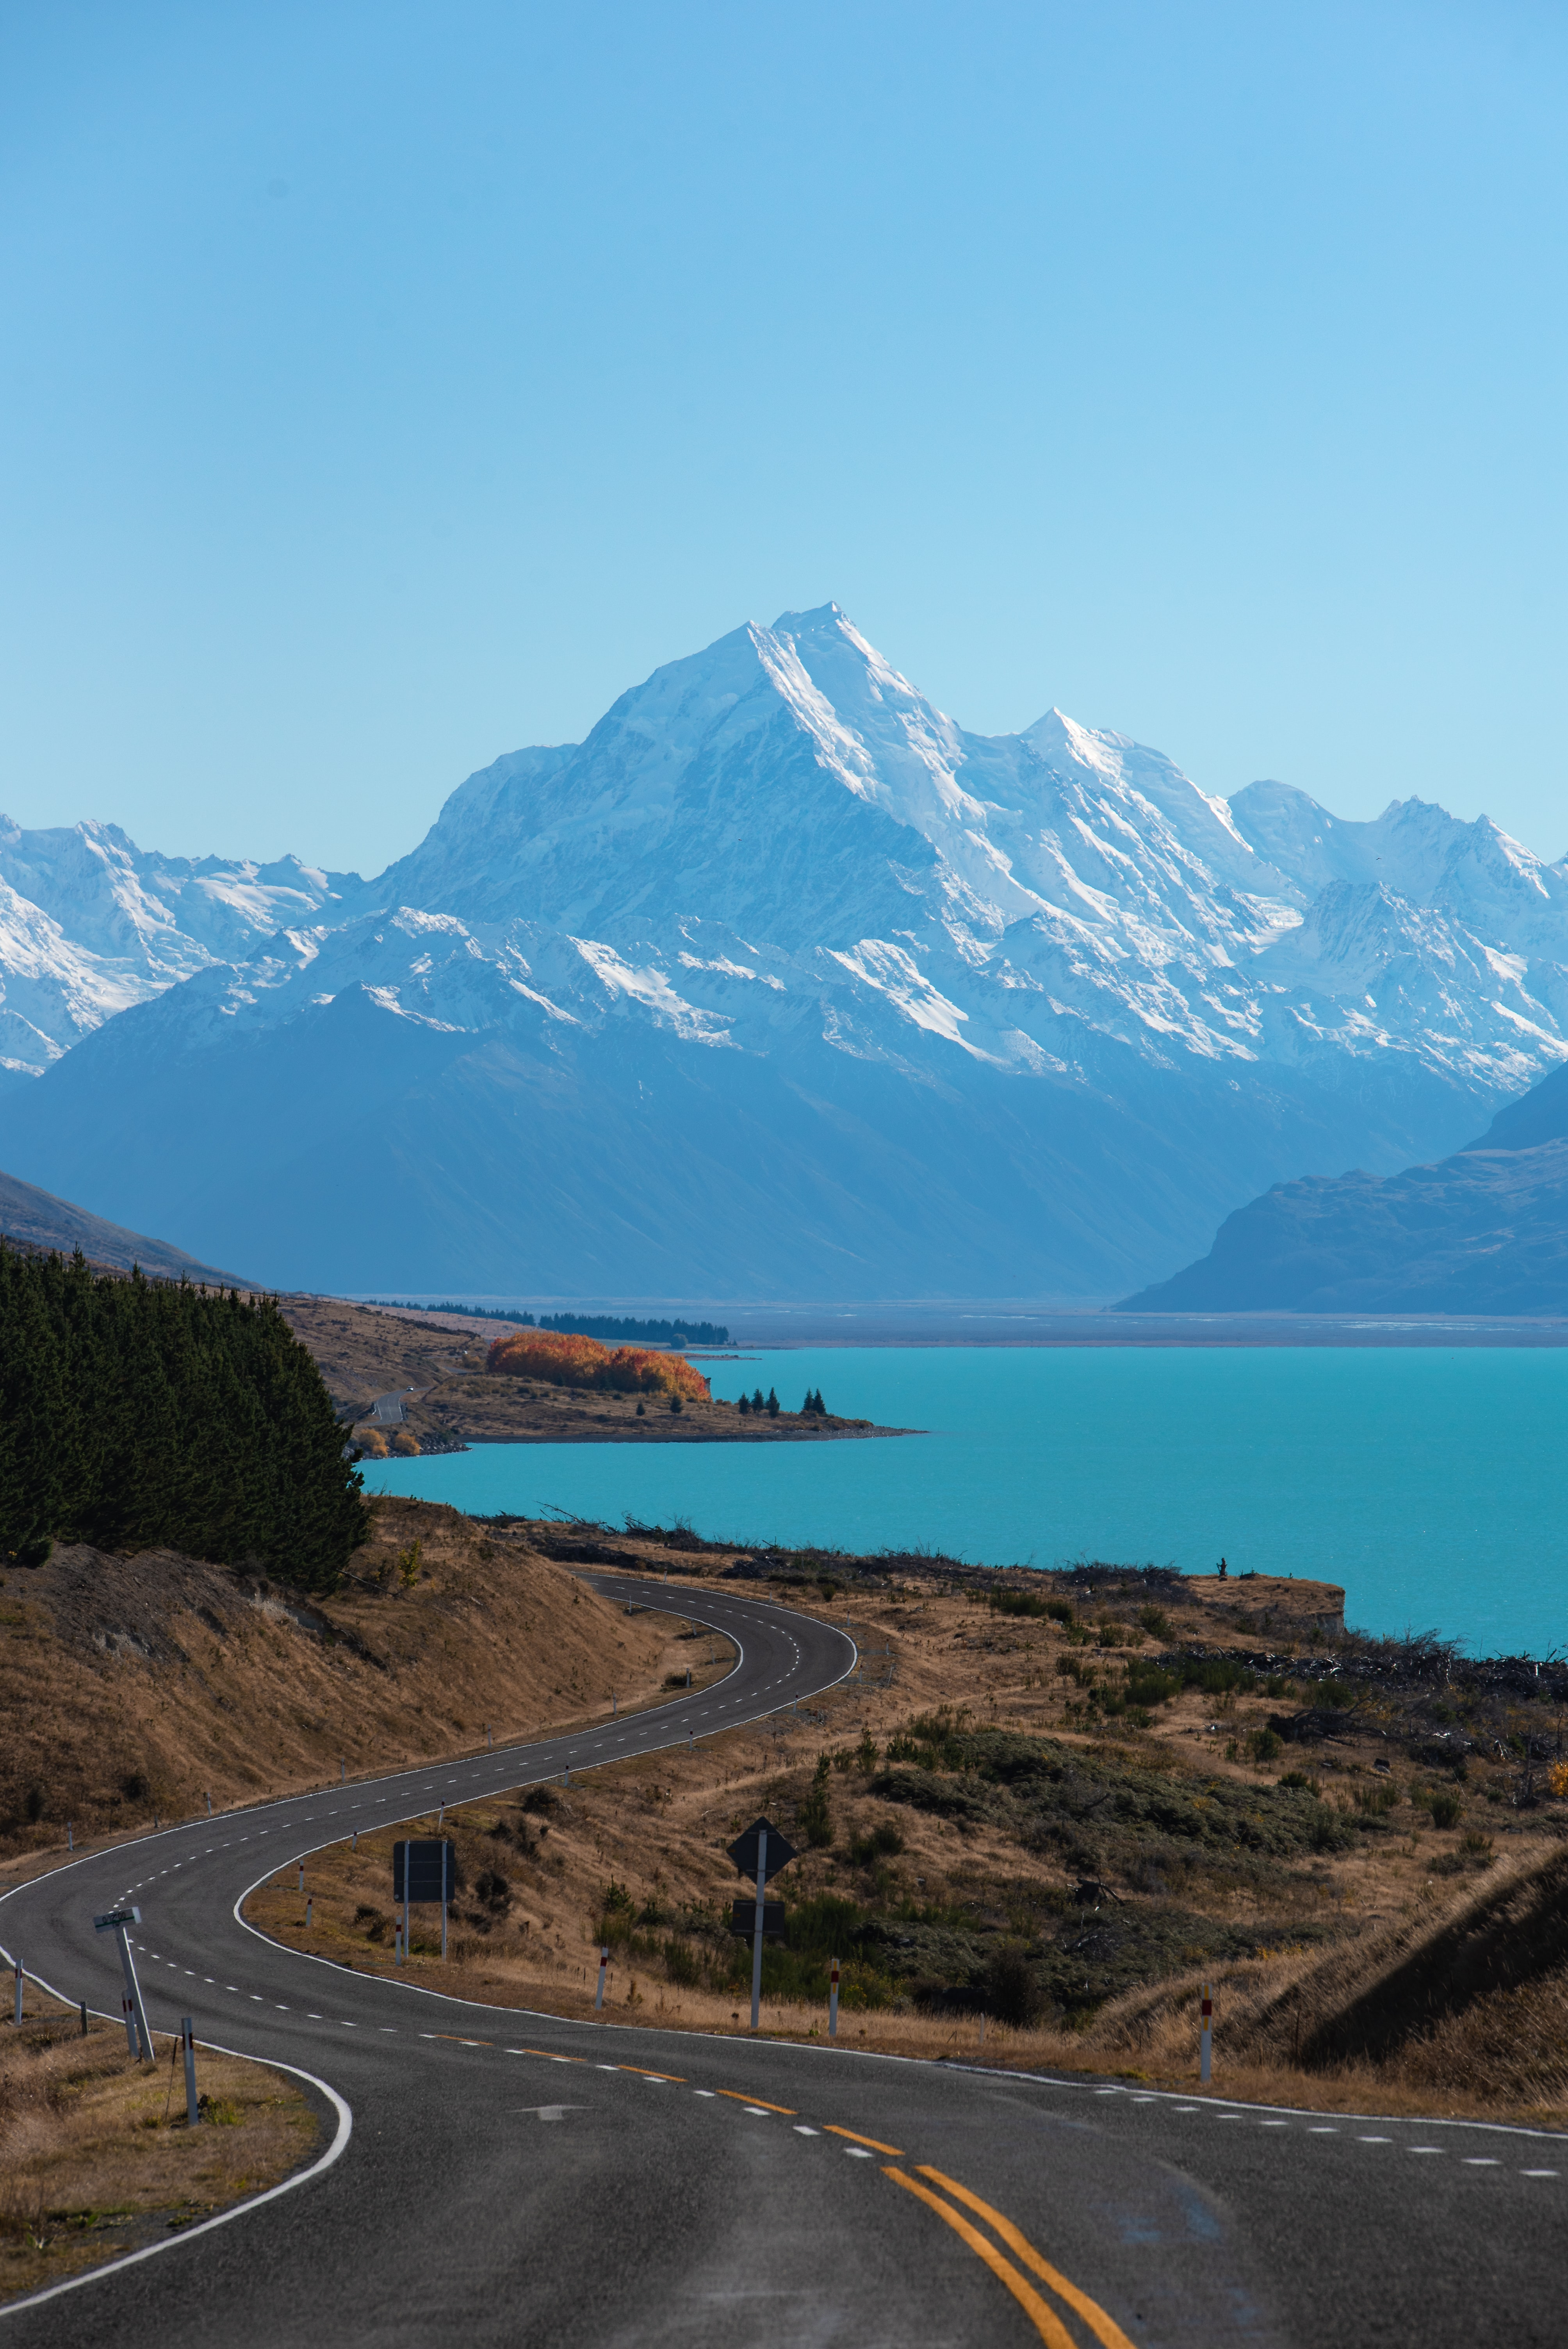 road towards snow capped mountain